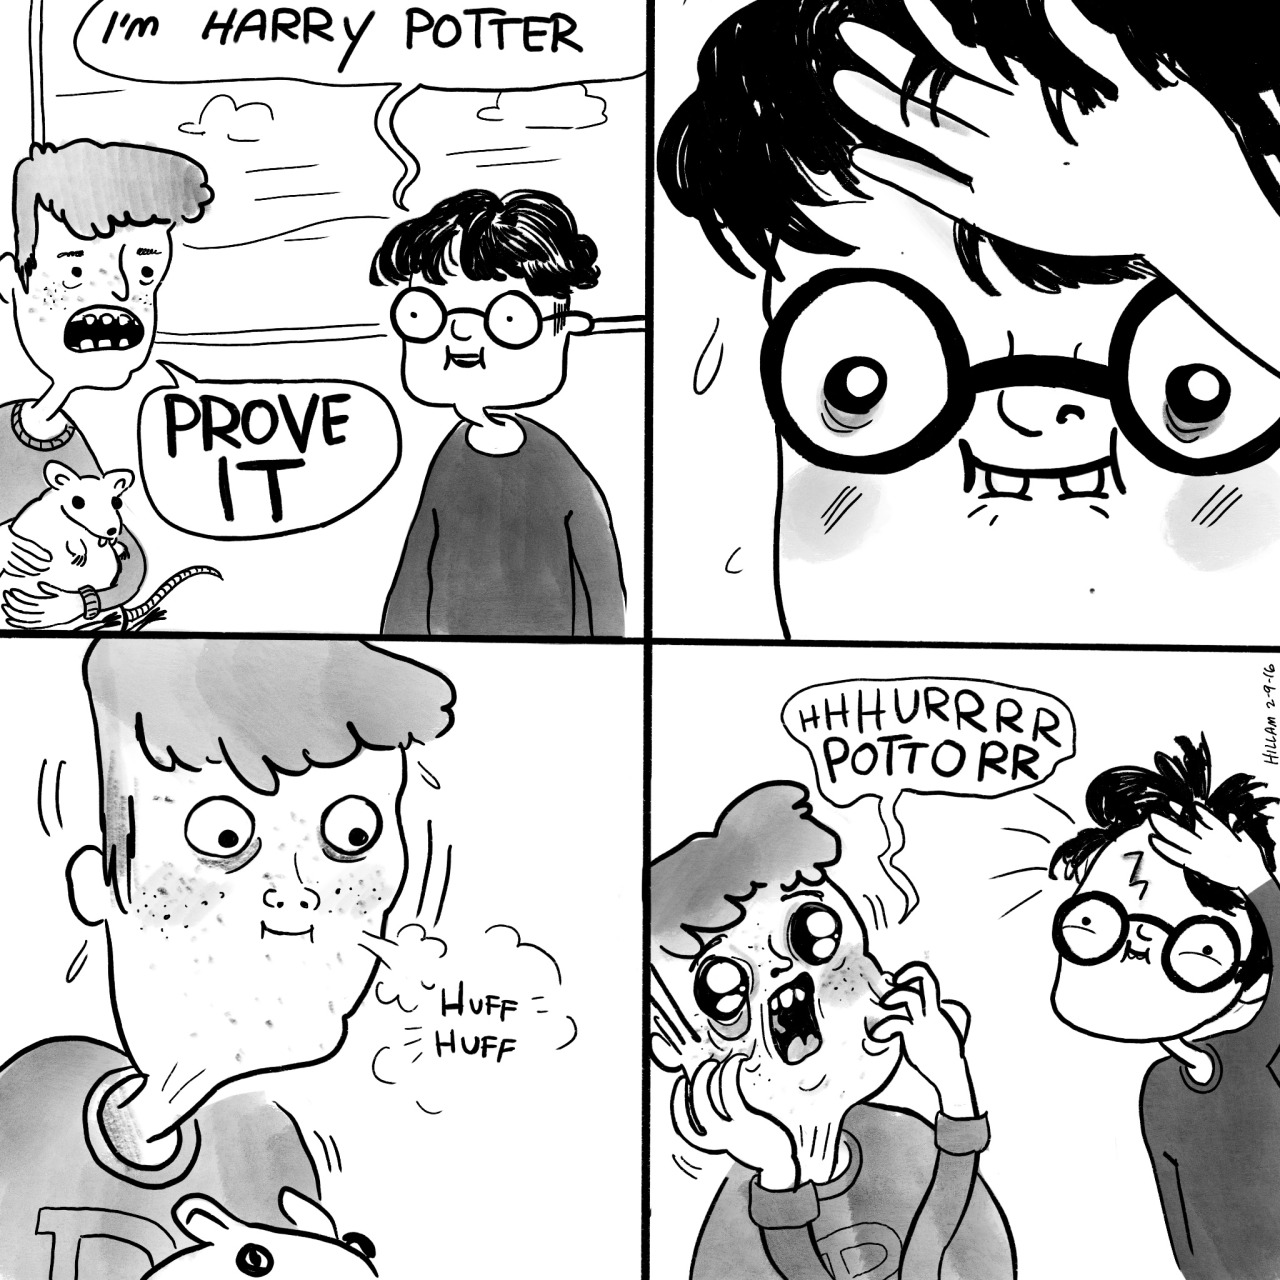 Funny comic from Harry Potter